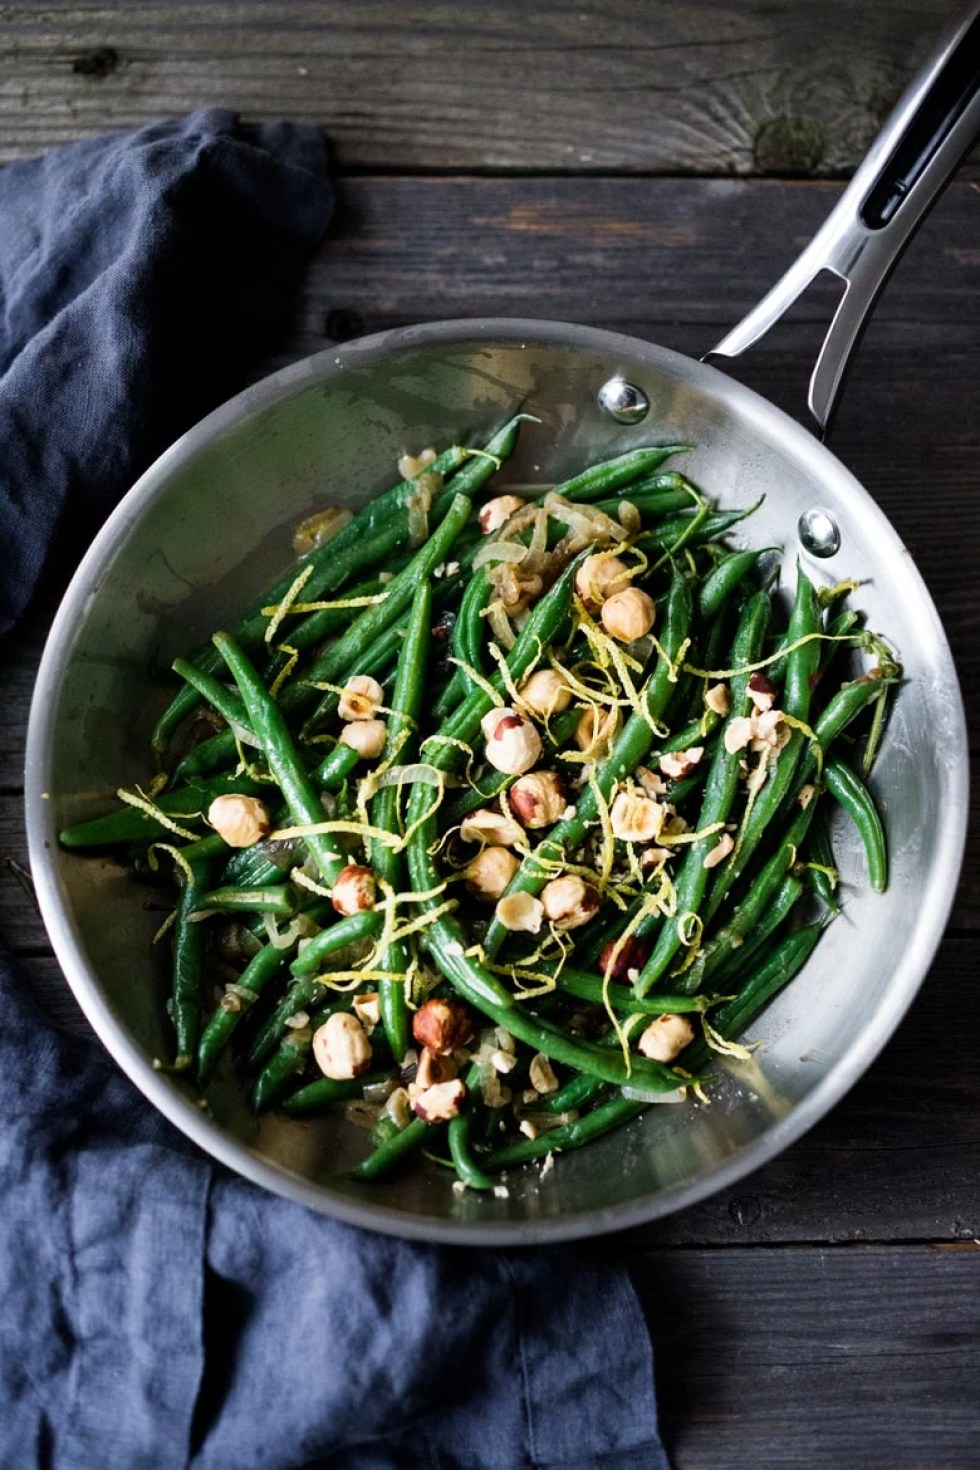 Hazelnut Green Beans with Lemon Zest and Truffle Oil - and easy, vegan, gluten free side dish that can be made in 15 minutes flat!   www.feastingathome.com